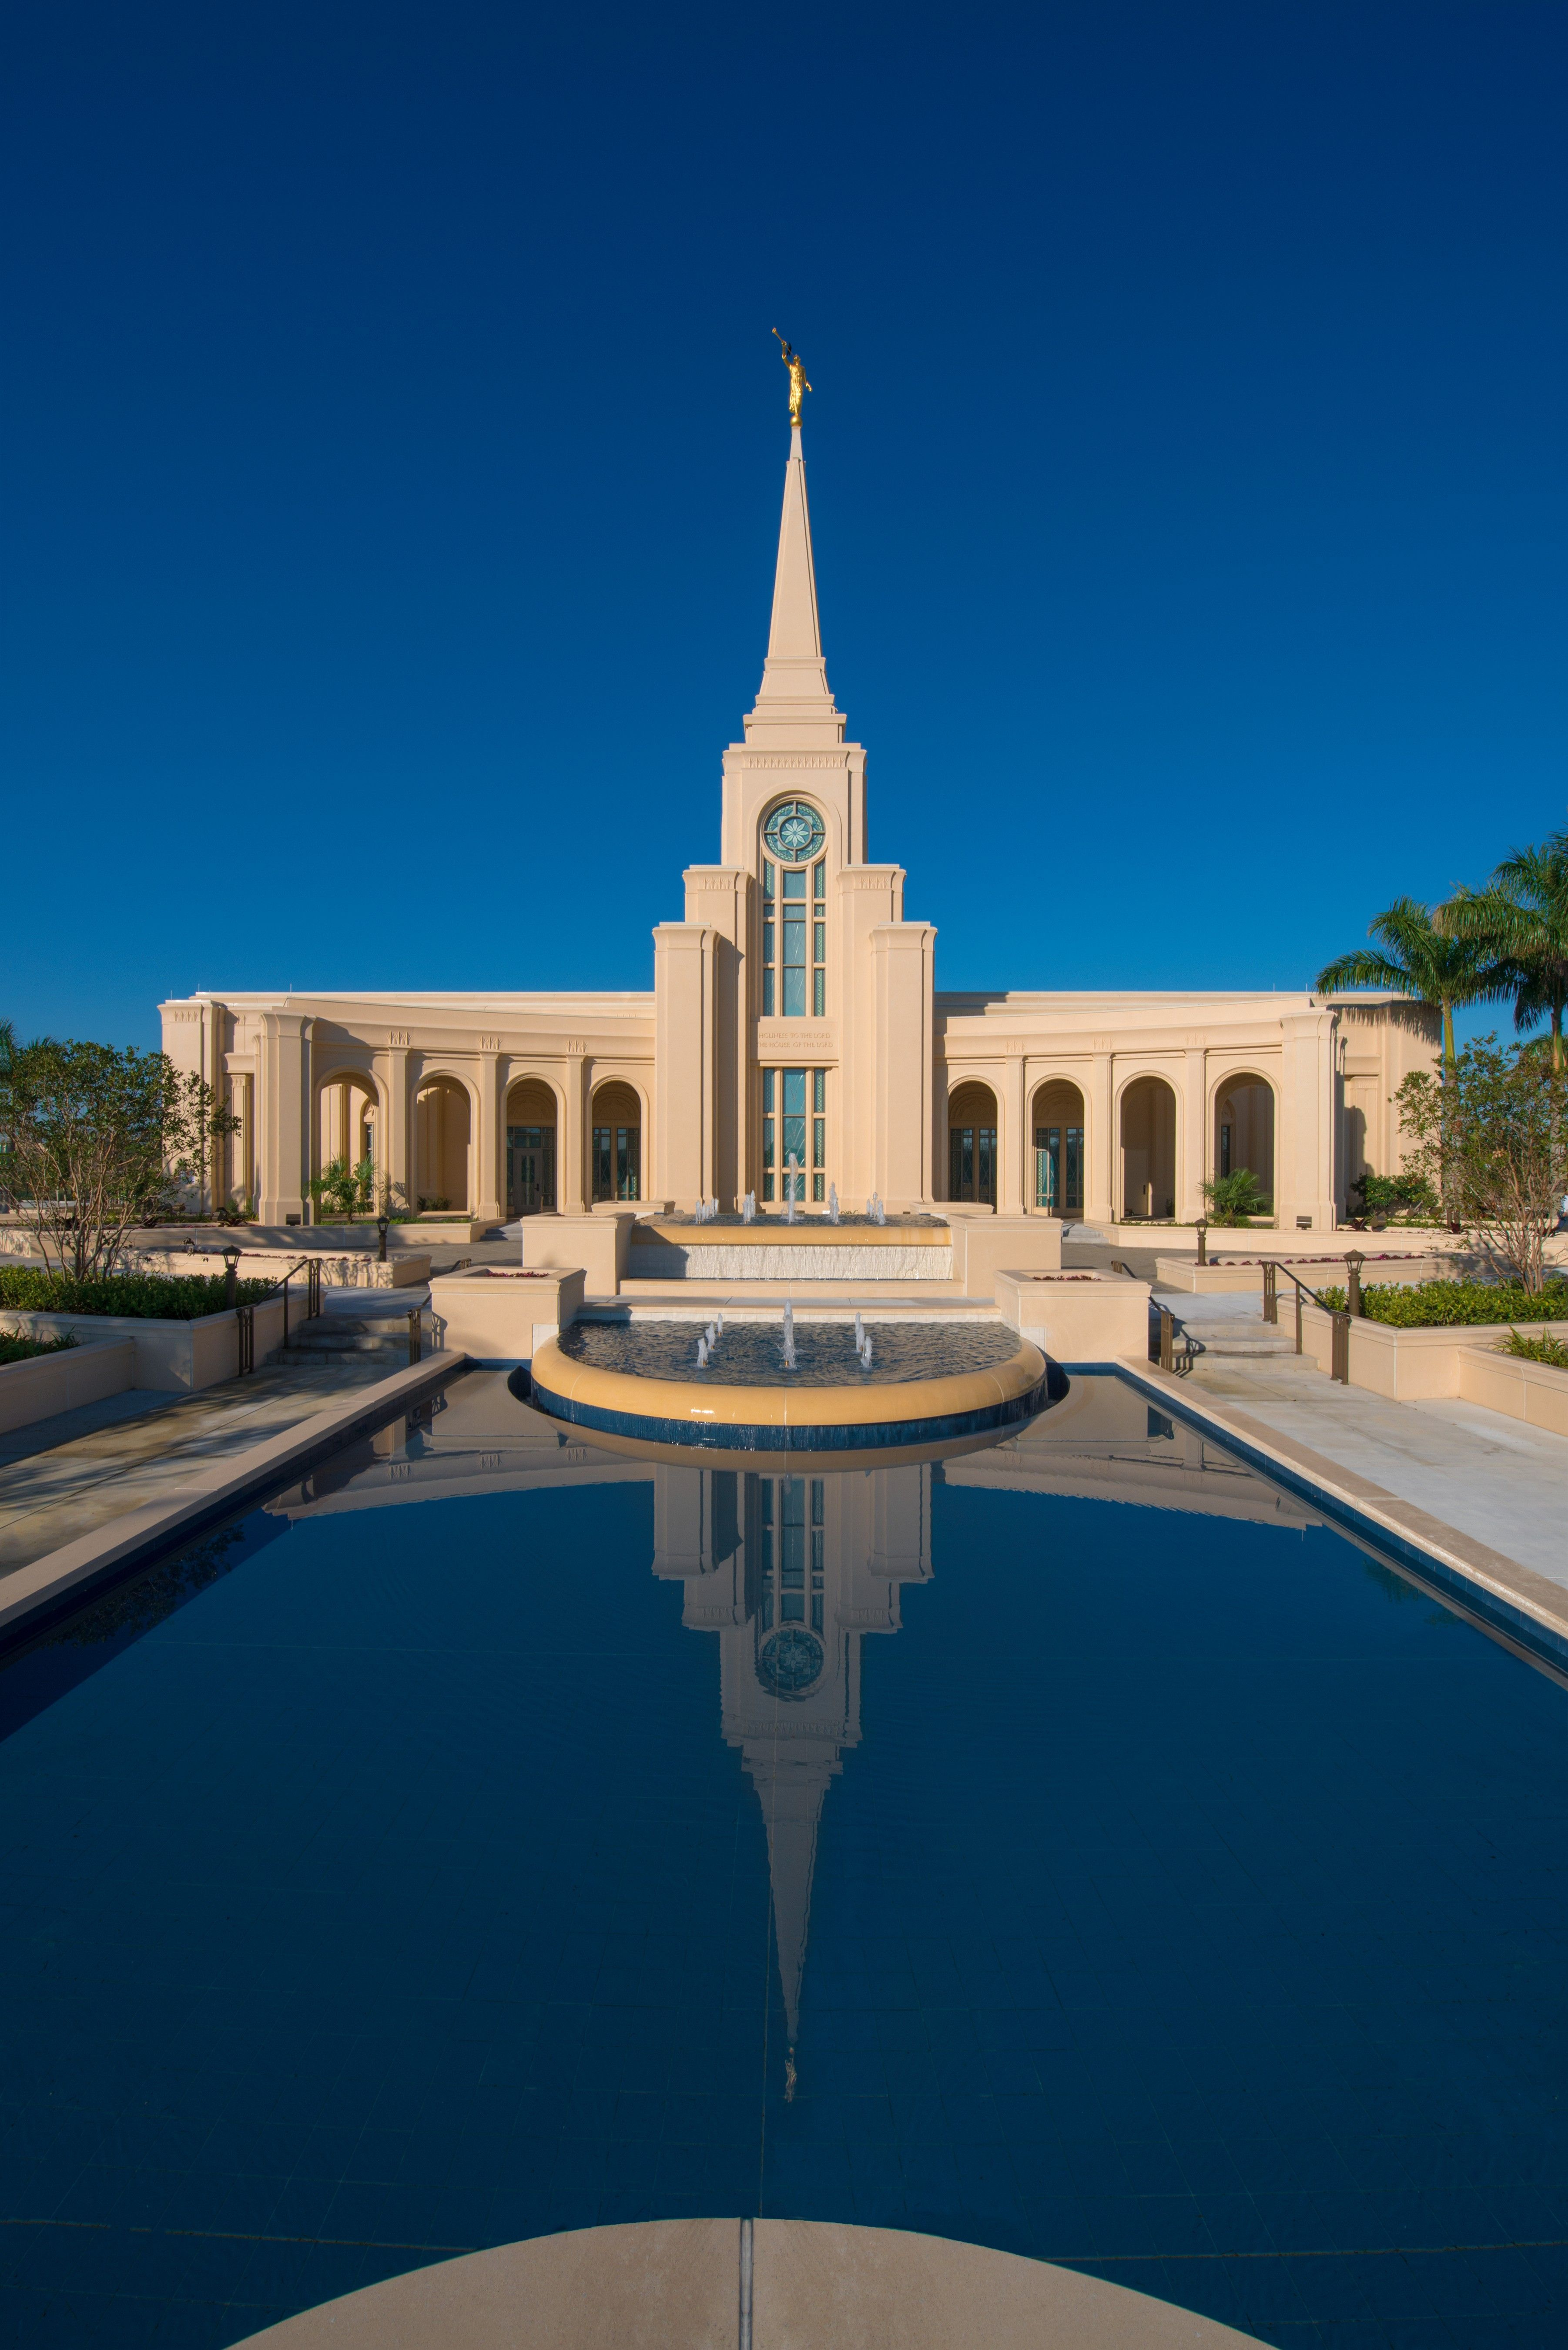 A reflection pool on the grounds of the Fort Lauderdale Florida Temple.